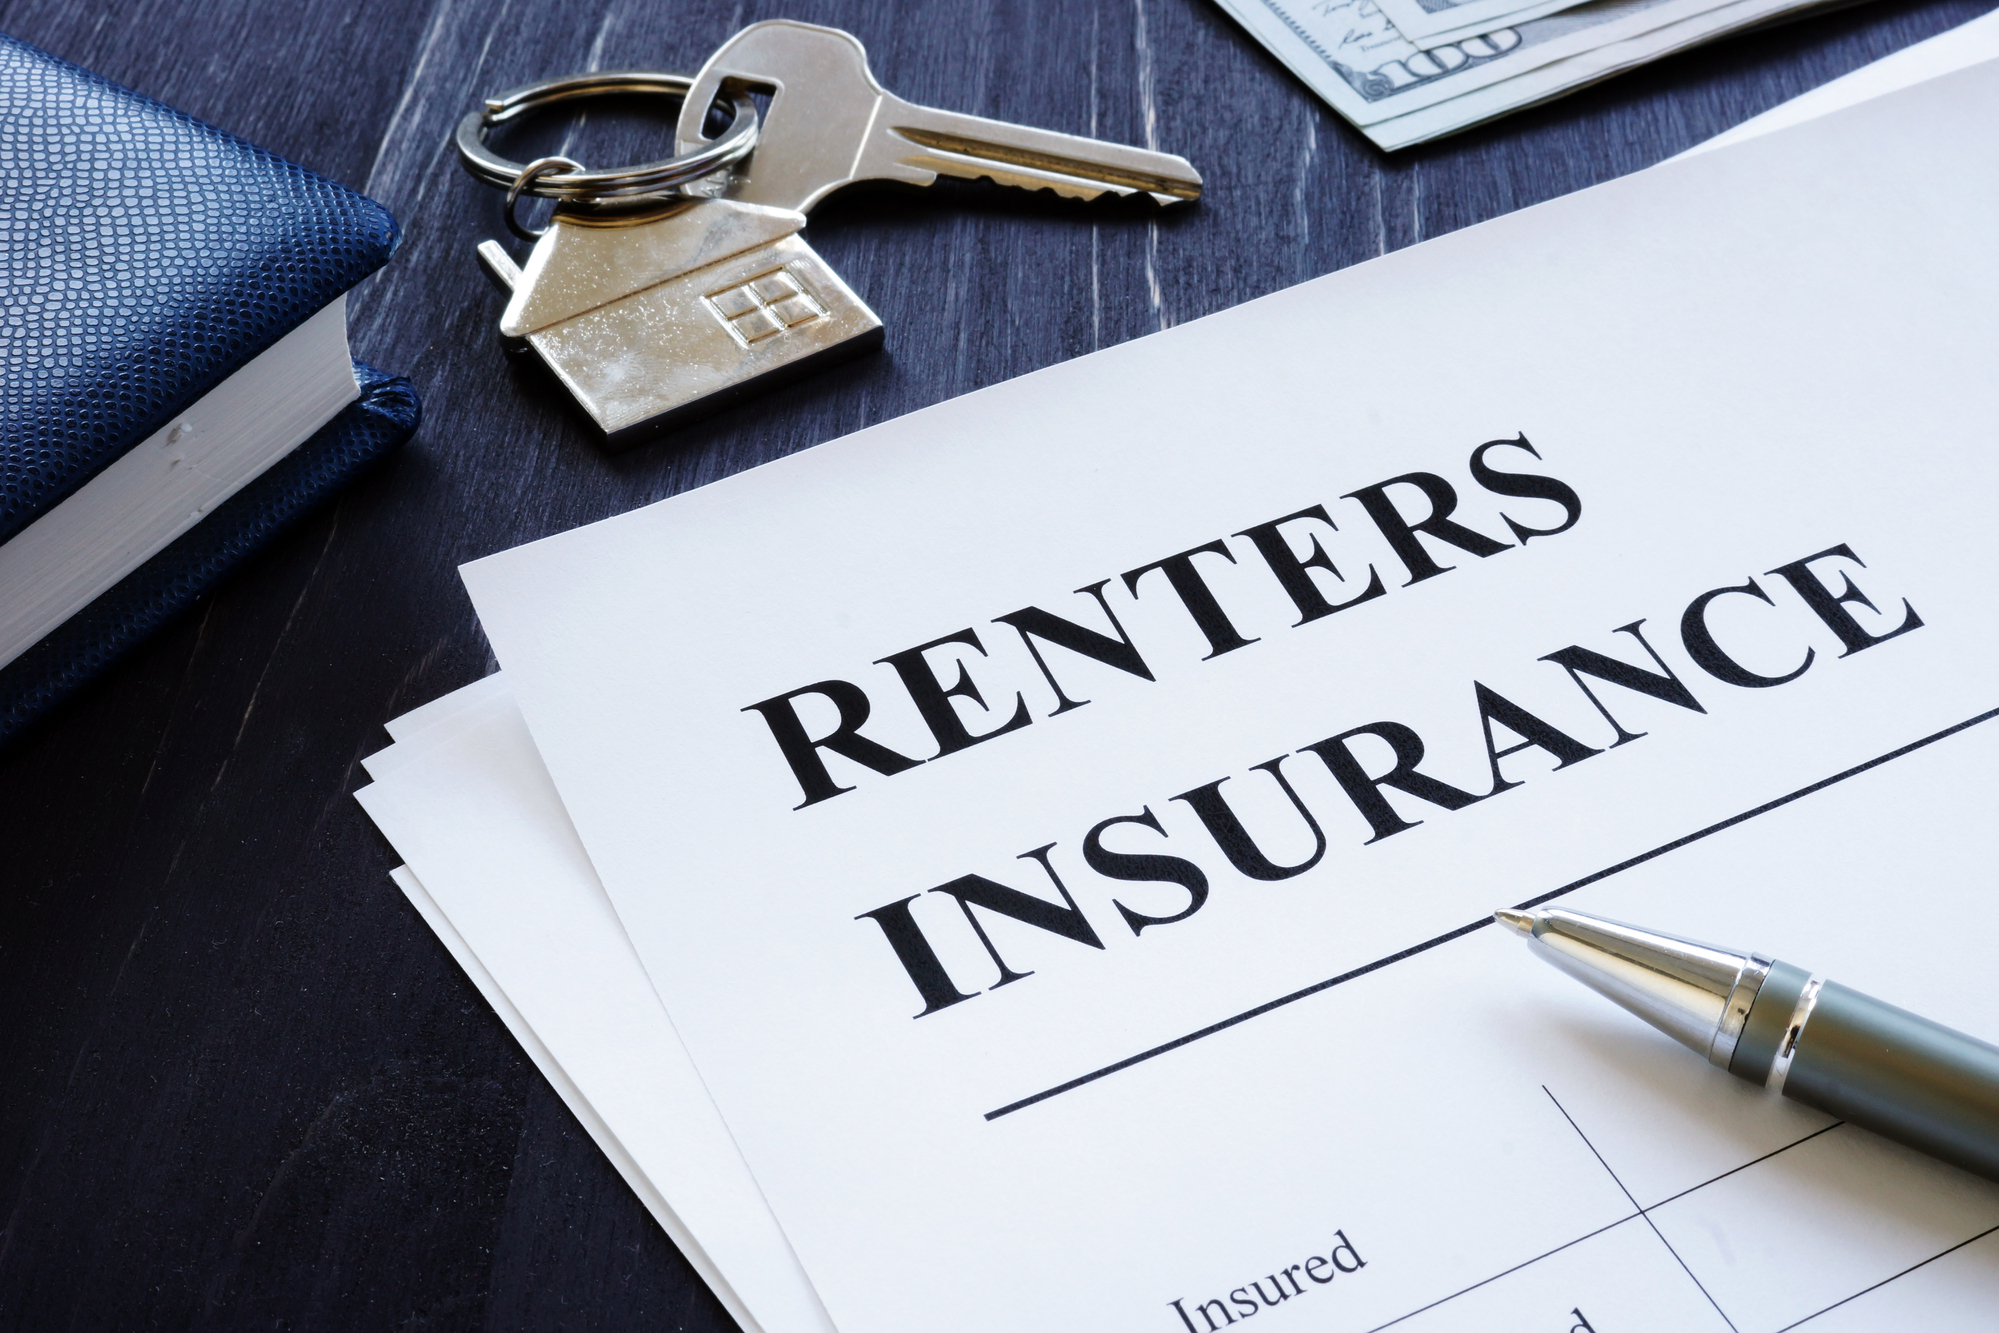 Renters Insurance policy agreement and key from apartments